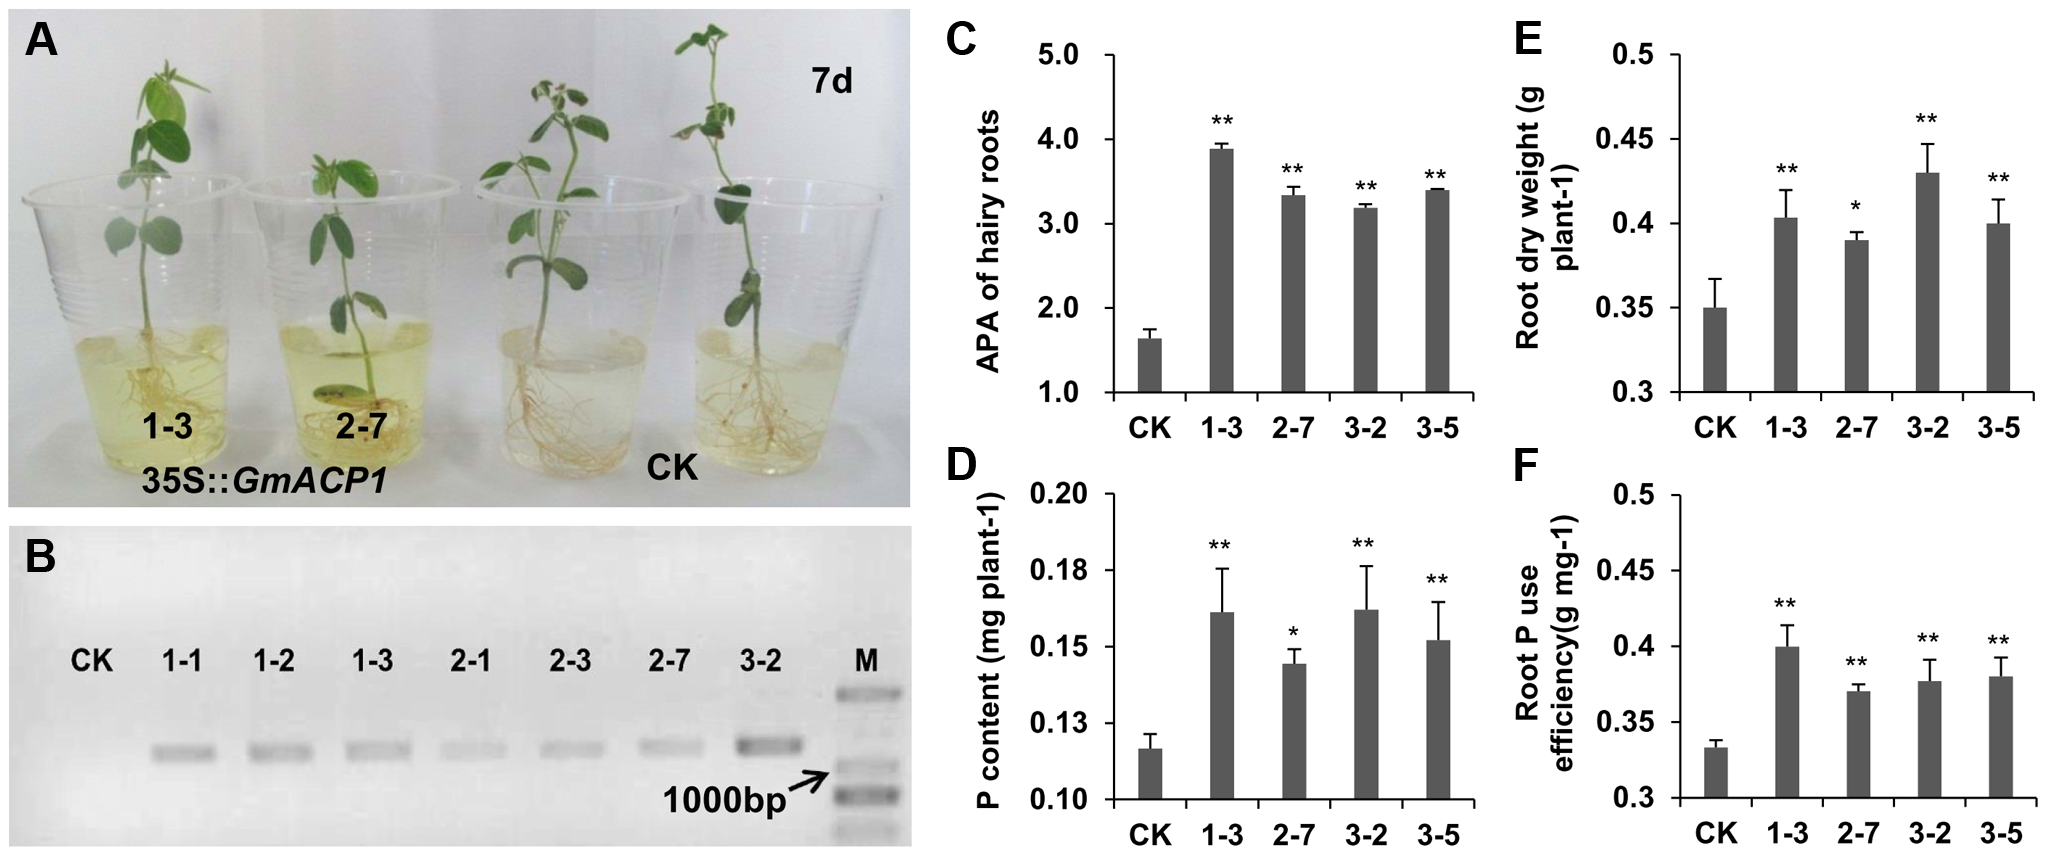 Phenotypes of hairy roots overexpressing <i>GmACP1</i> and control hairy roots (CK) cultured by hydroponics and supplied with 0.5 mM phytate.